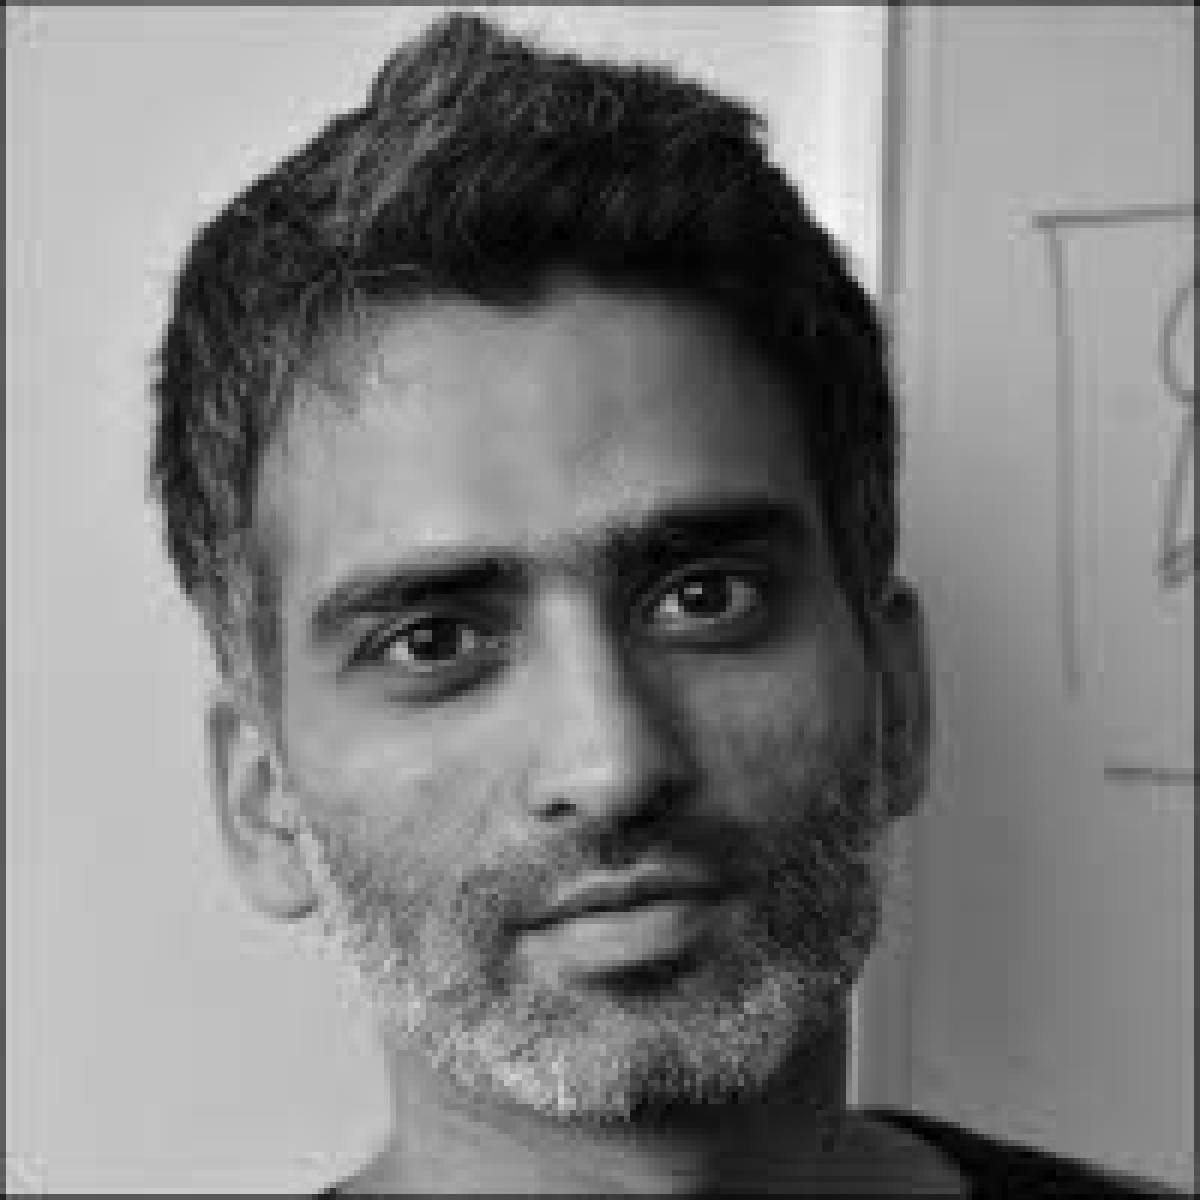 Iraj Fraz Batla joins DDB Mudra Group as ECD